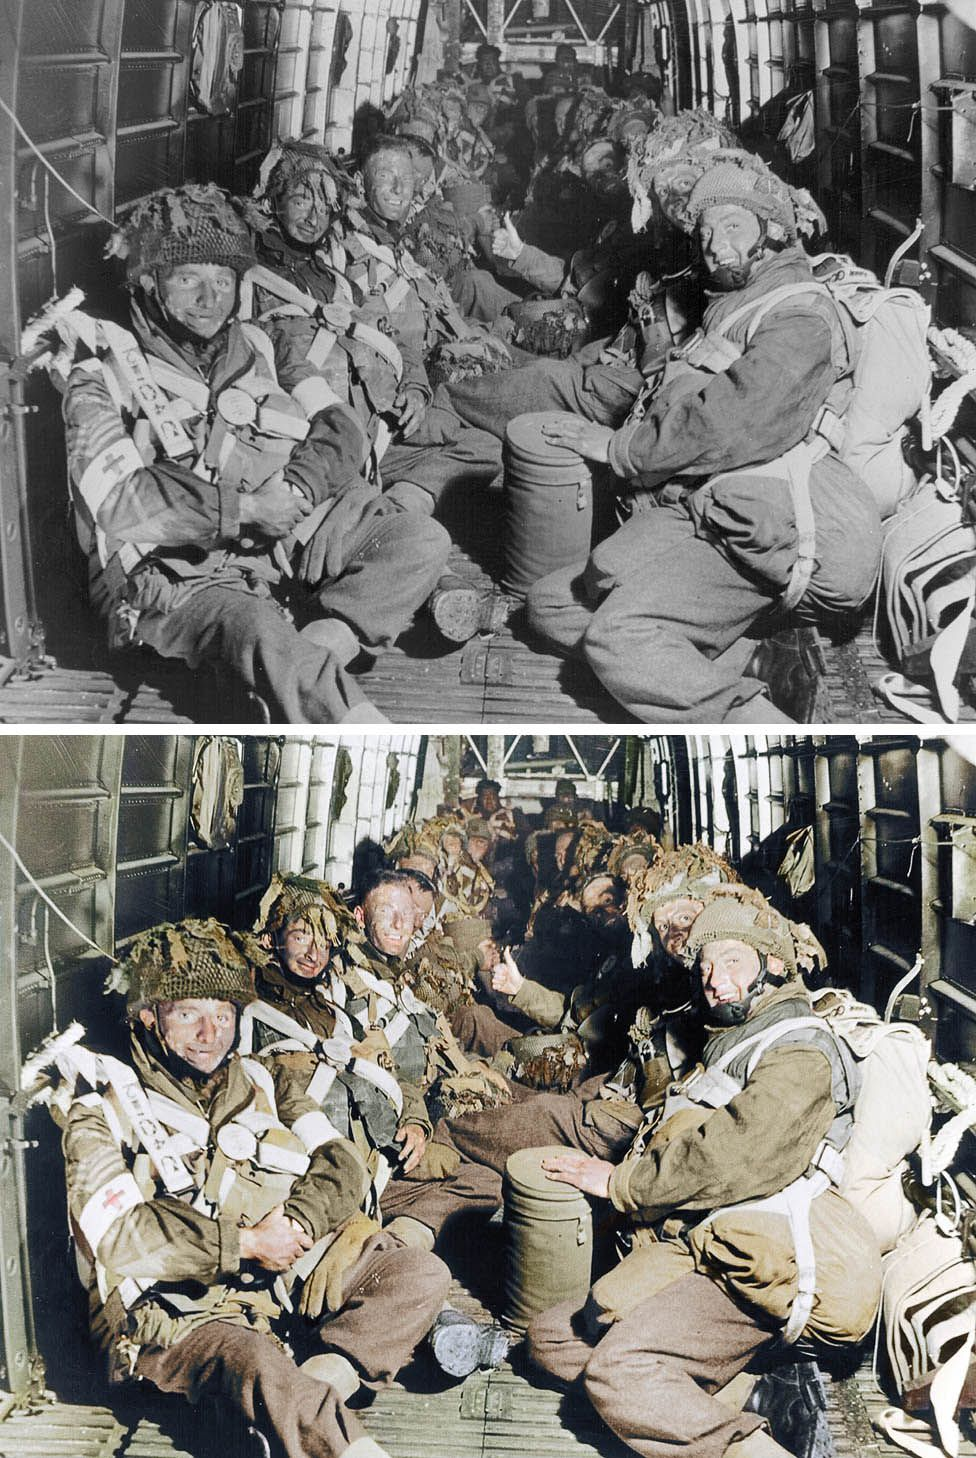 British paratroops of the 6th Airborne Division